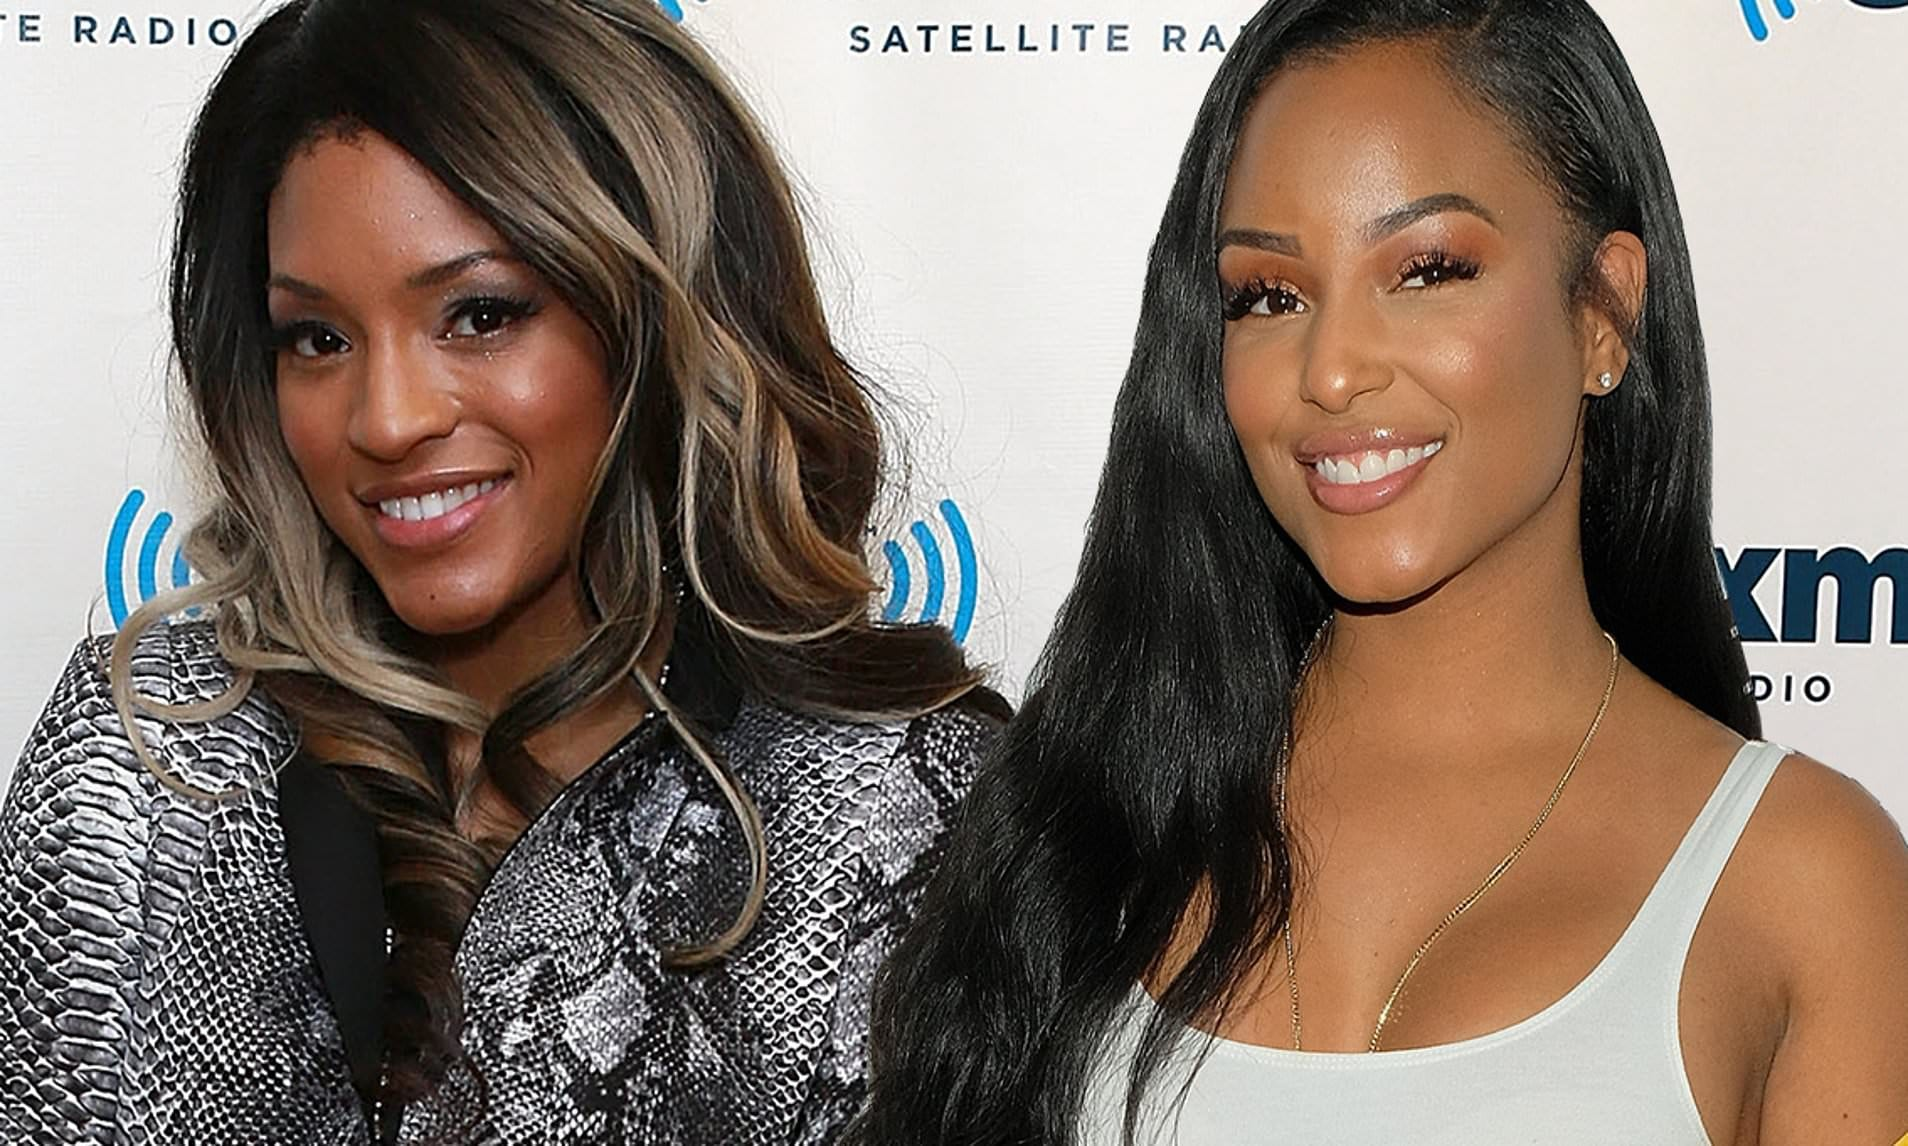 The Real Housewives Of Atlanta Season 13 Episodes 19 Release Date and Spoilers